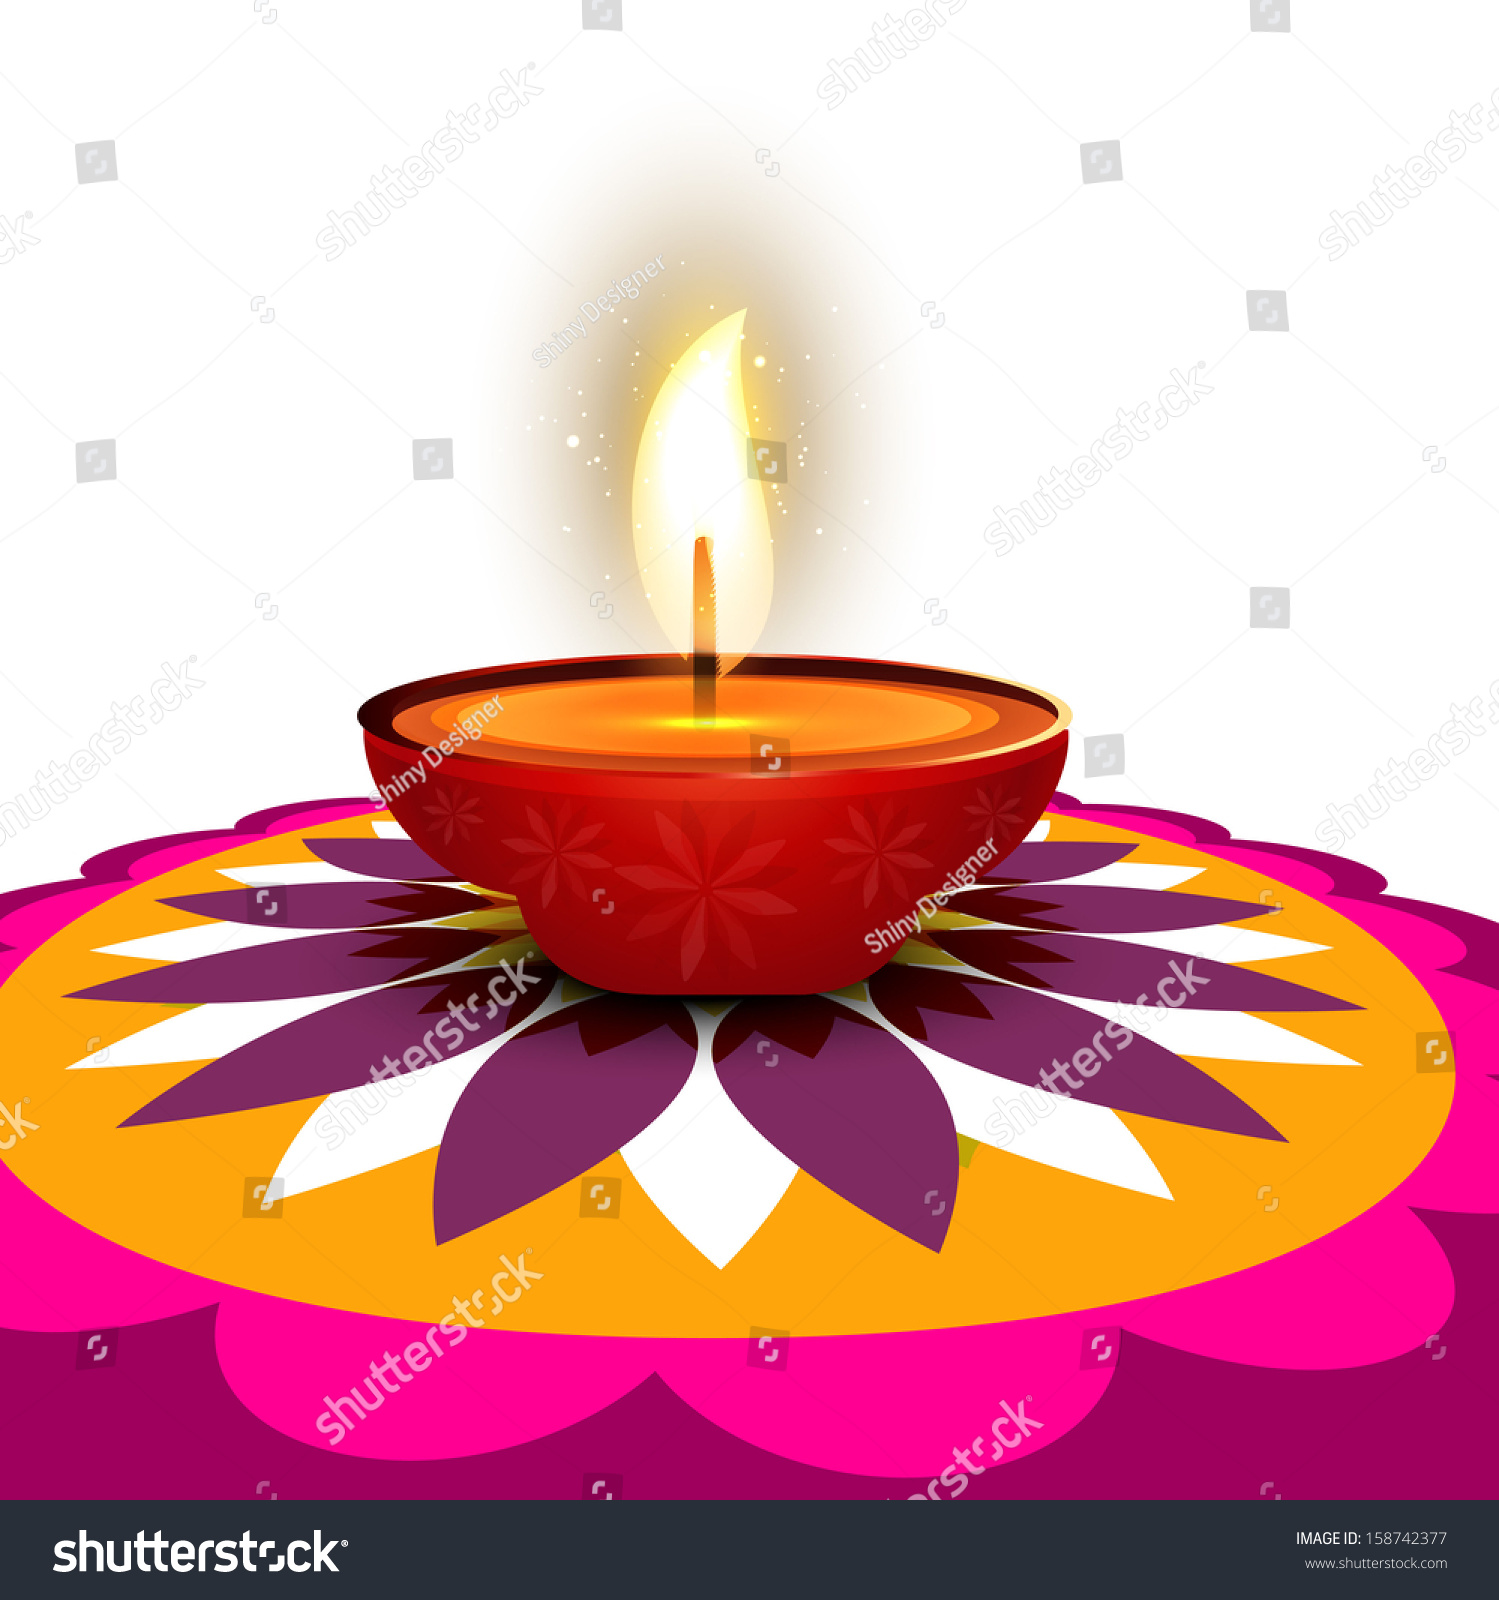 30   Cool Diwali Lamps for Diwali Lamp Designs  61obs